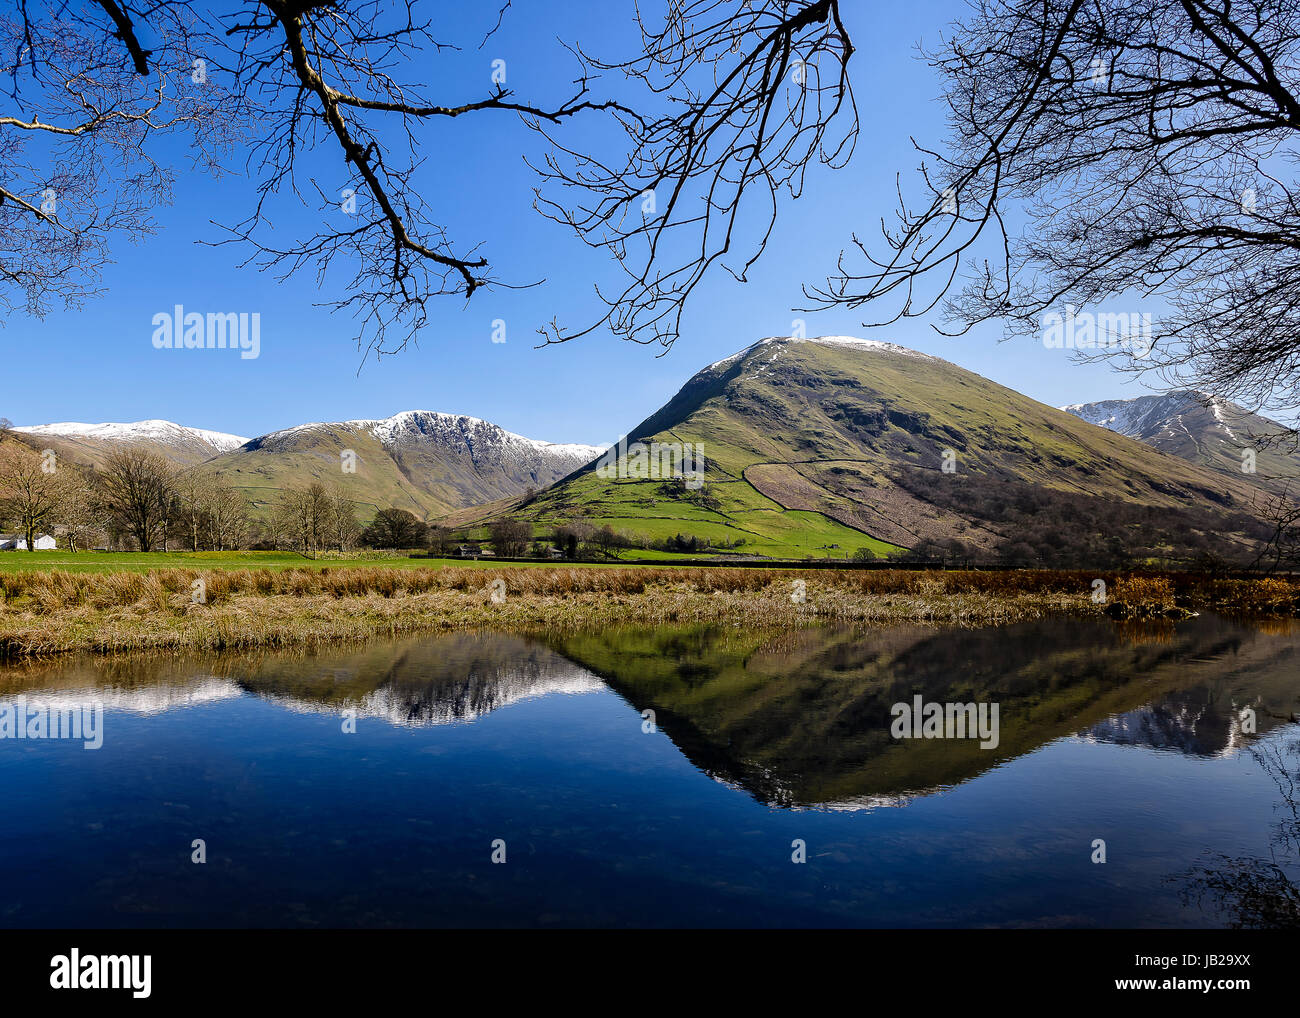 Hartsop Dodd reflected in Brothers Water - Stock Image